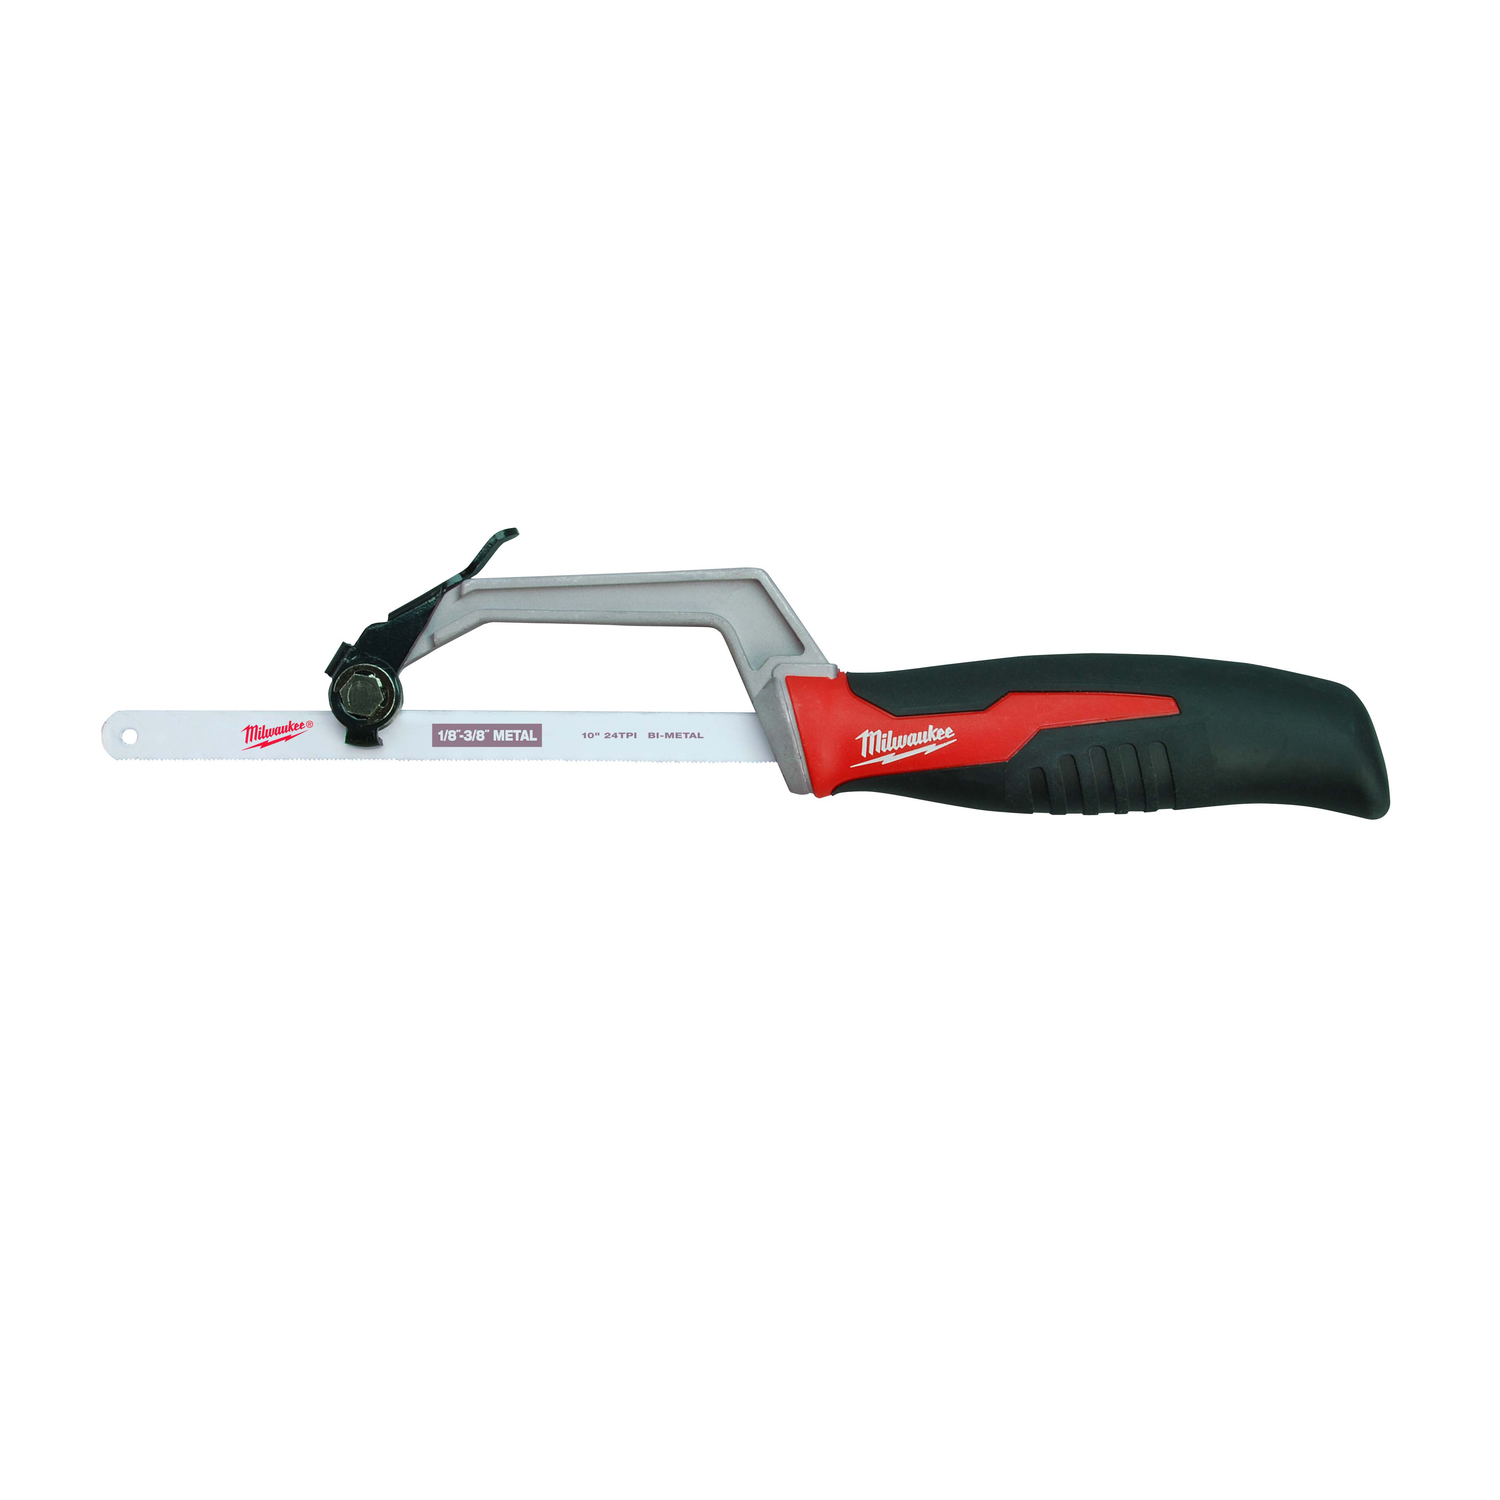 Milwaukee  10 in. Bi-Metal  Compact  14 TPI 1 pc. Hand Saw